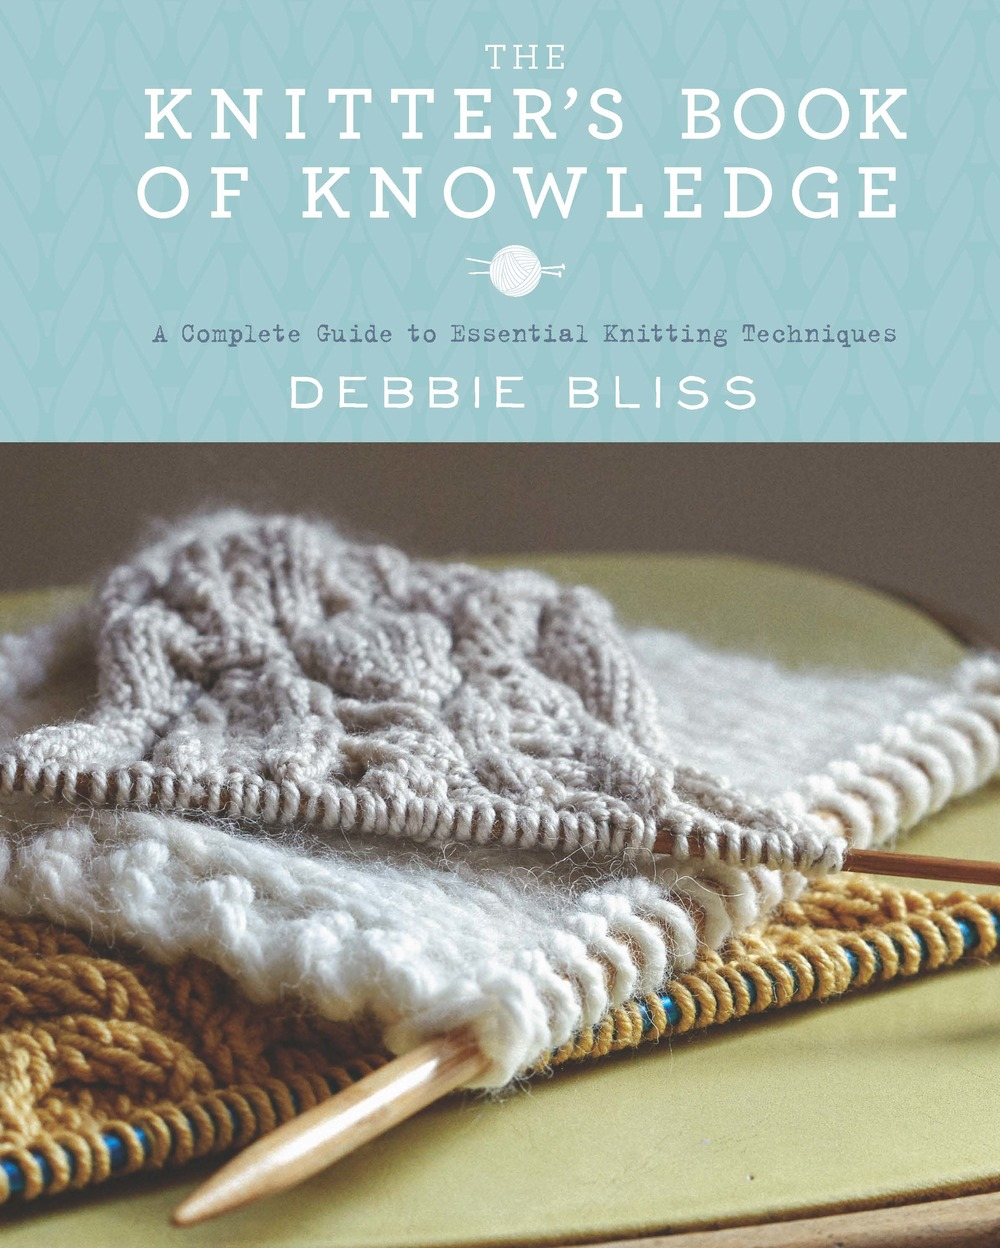 Knitters Book of Knowledge - cover.jpg